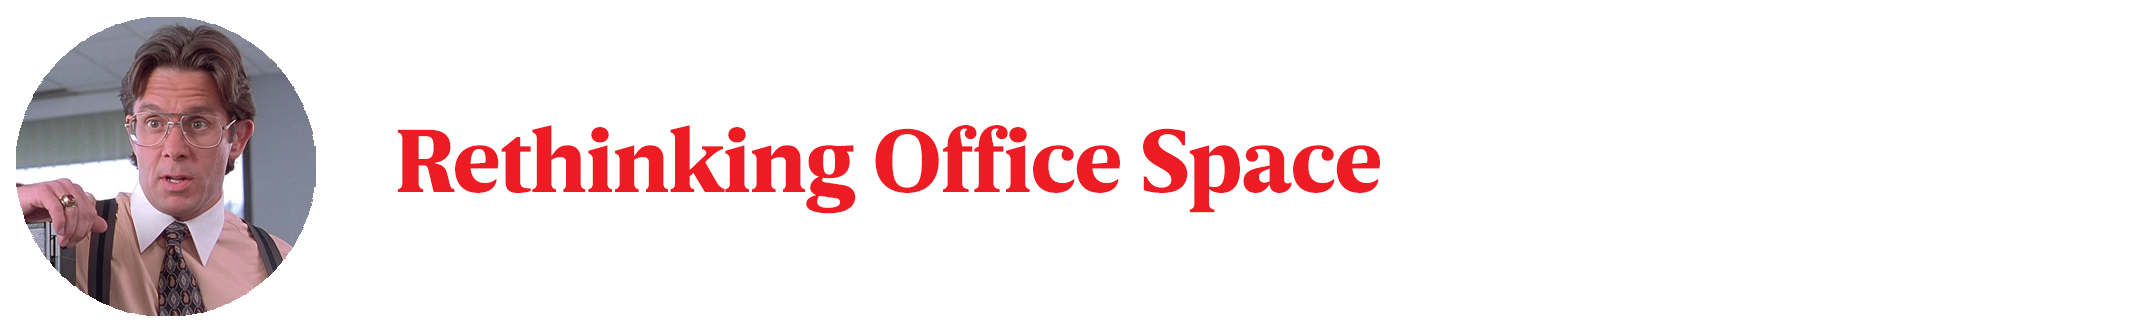 rethinking office space